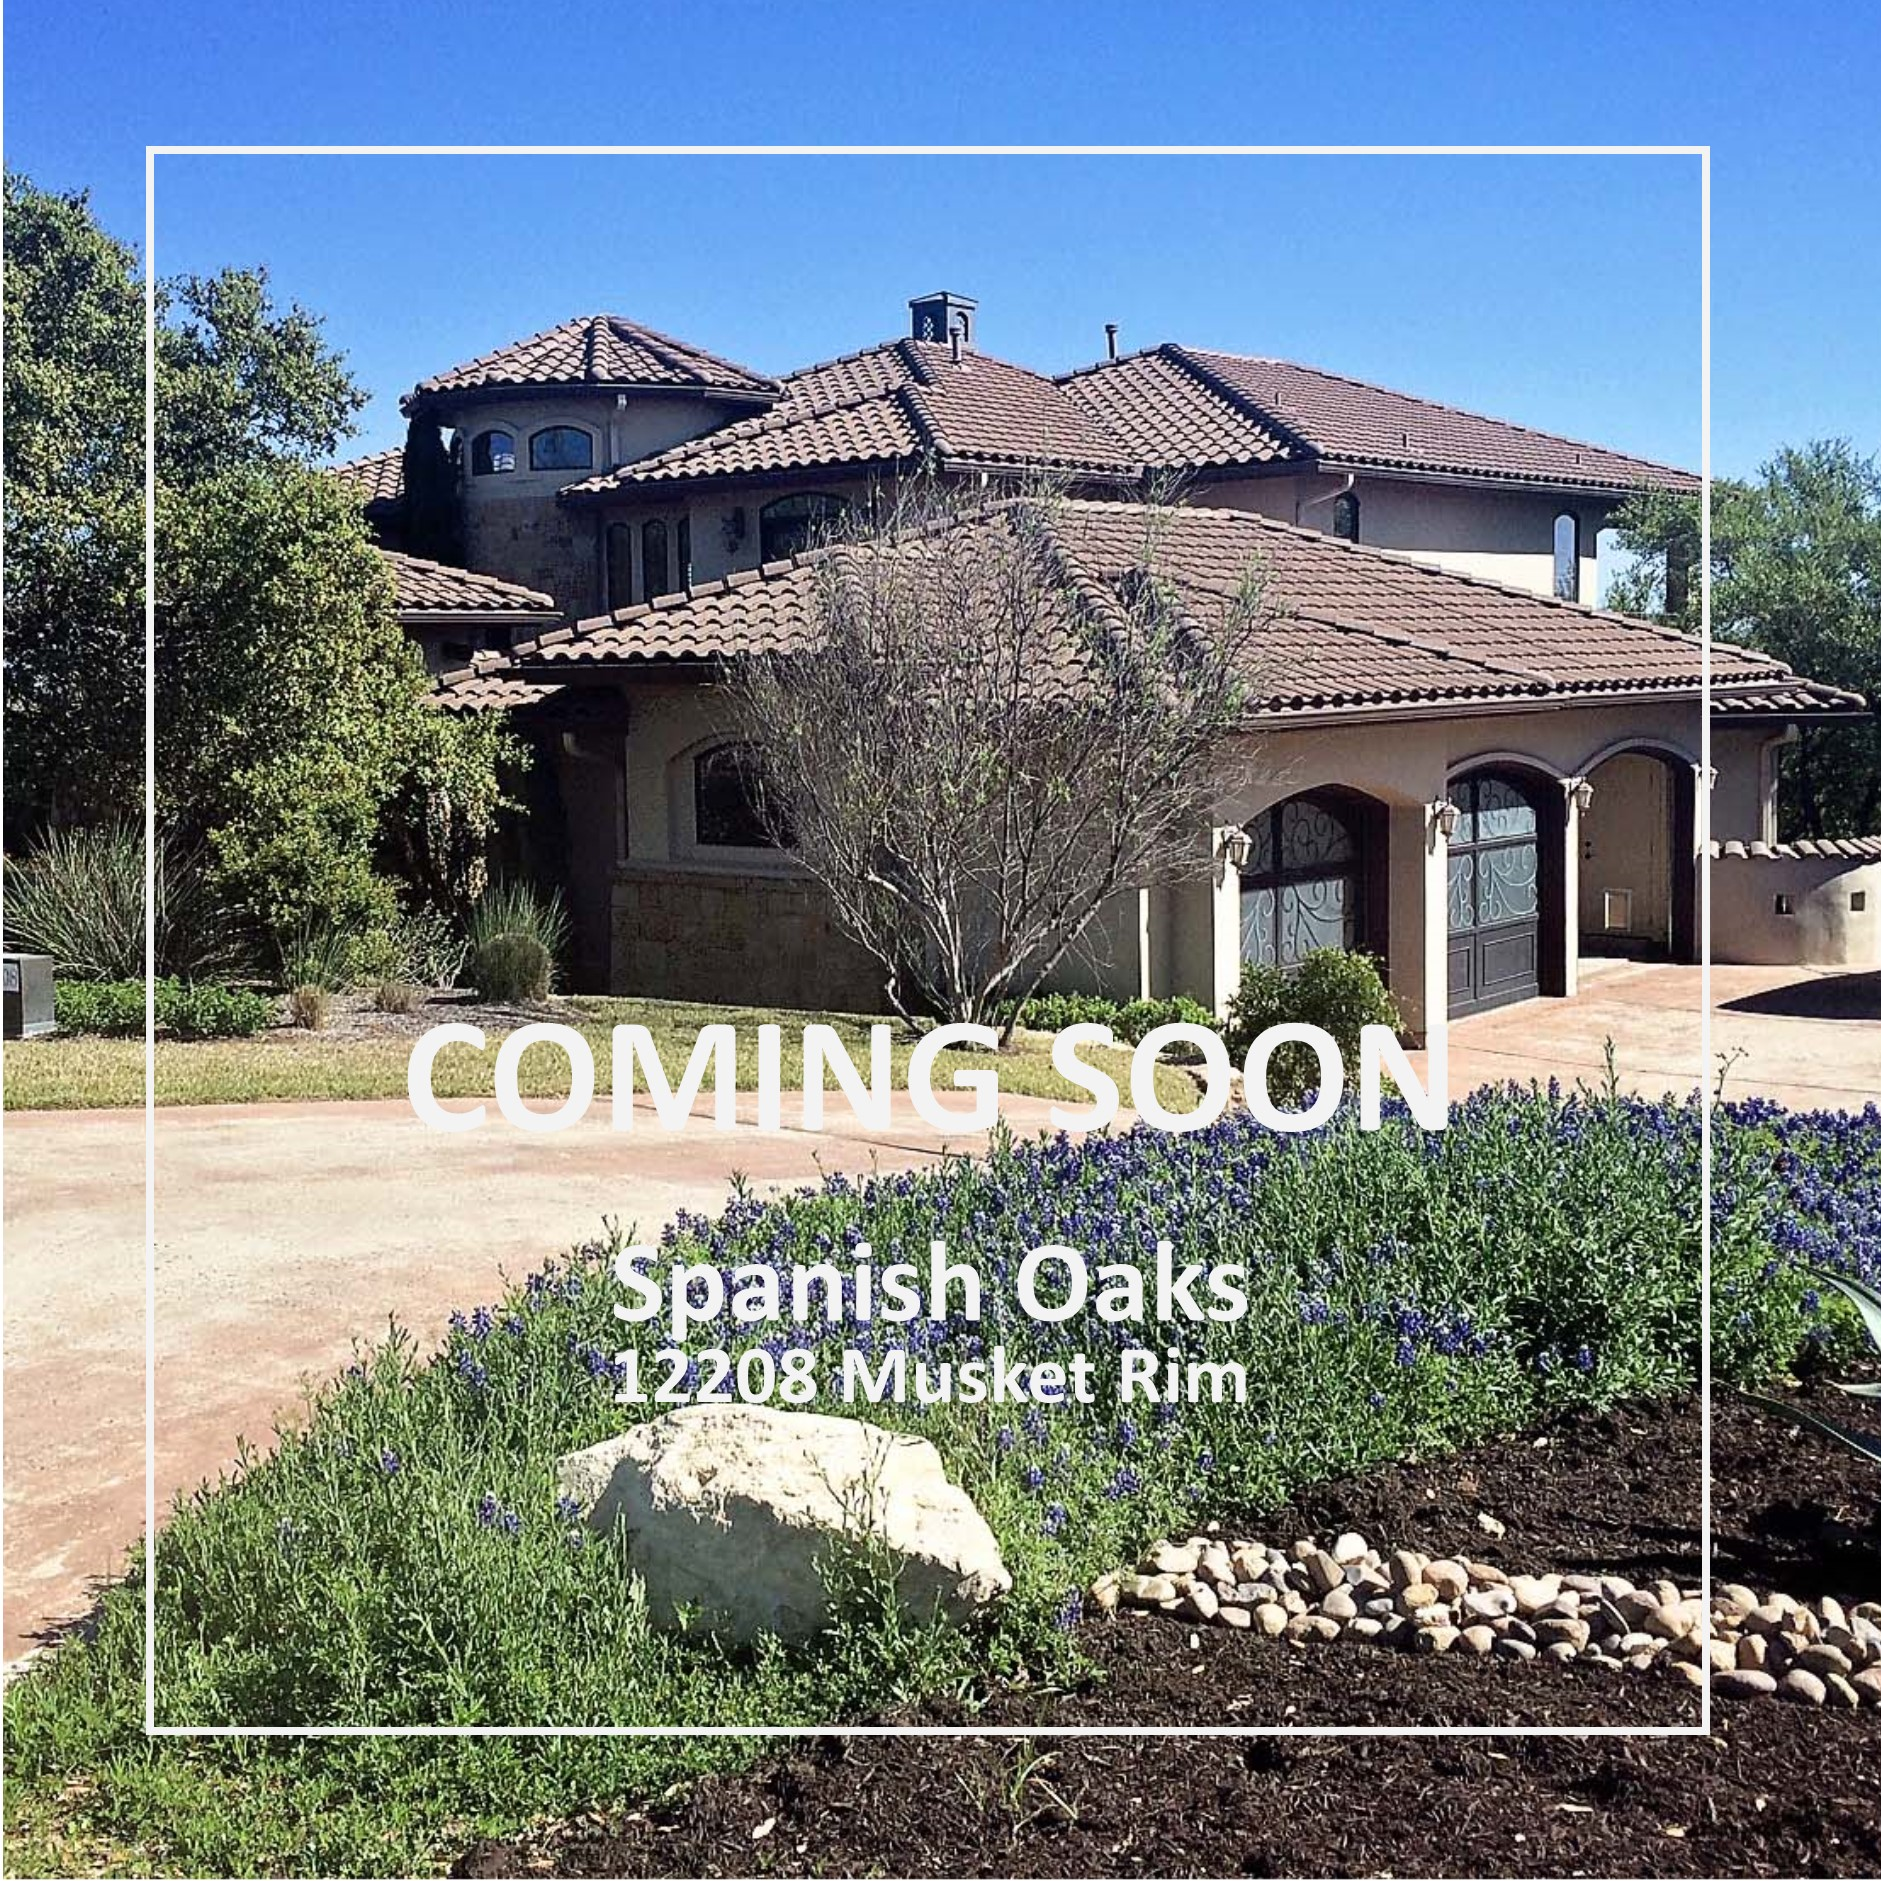 Spanish Oaks Home for Sale | Austin Real Estate Group | Lori Wakefield REALTOR